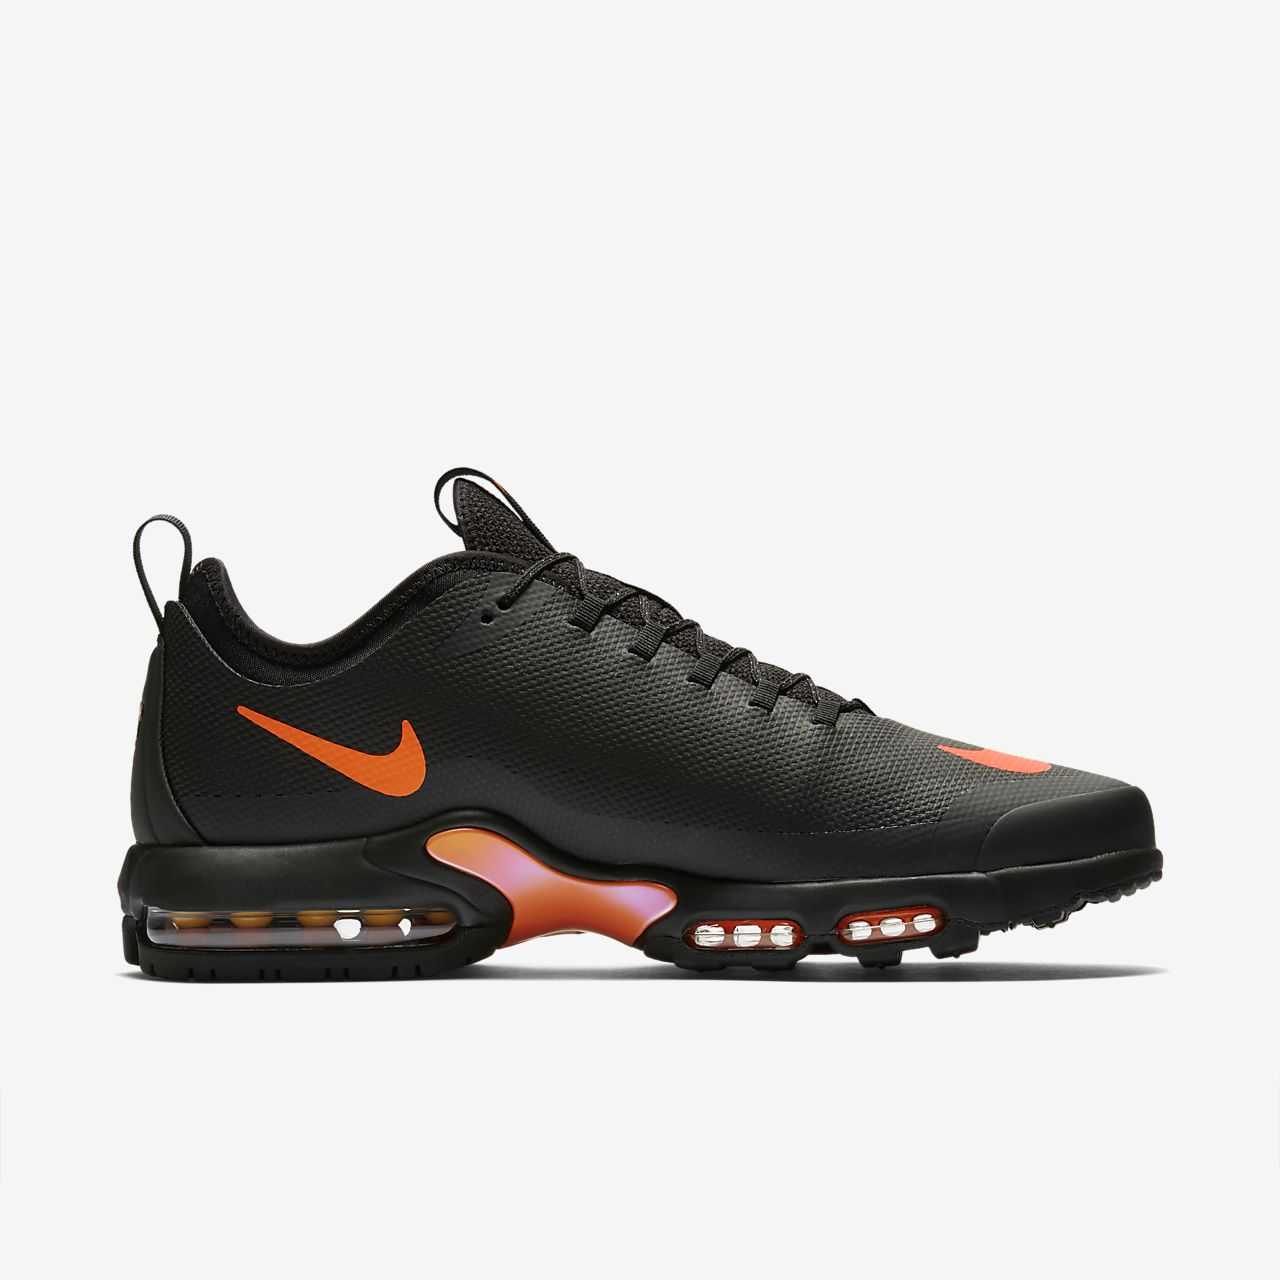 chaussure nike air max plus tn ultra se pour homme nike. Black Bedroom Furniture Sets. Home Design Ideas